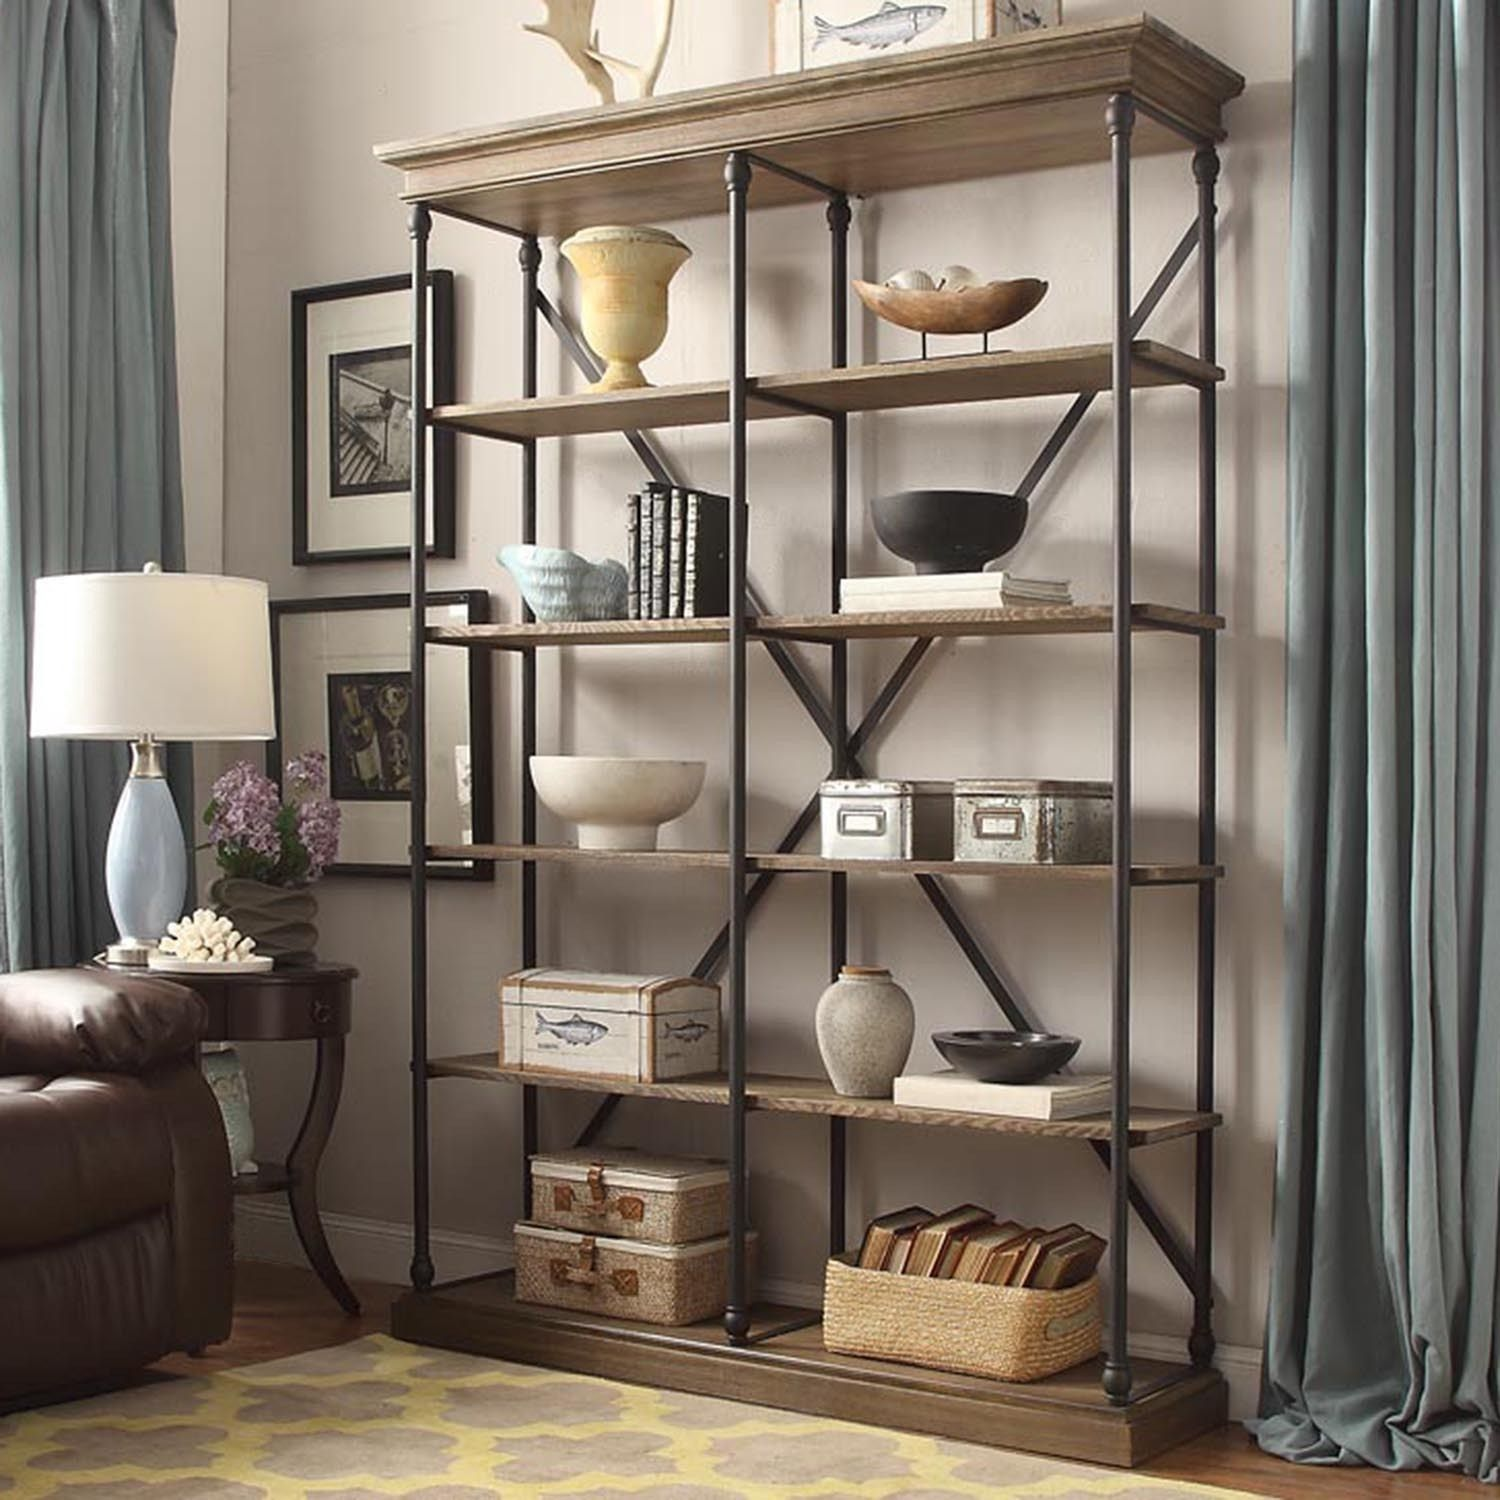 Add bold and rustic character to any room with this industrial style  extra-large bookcase